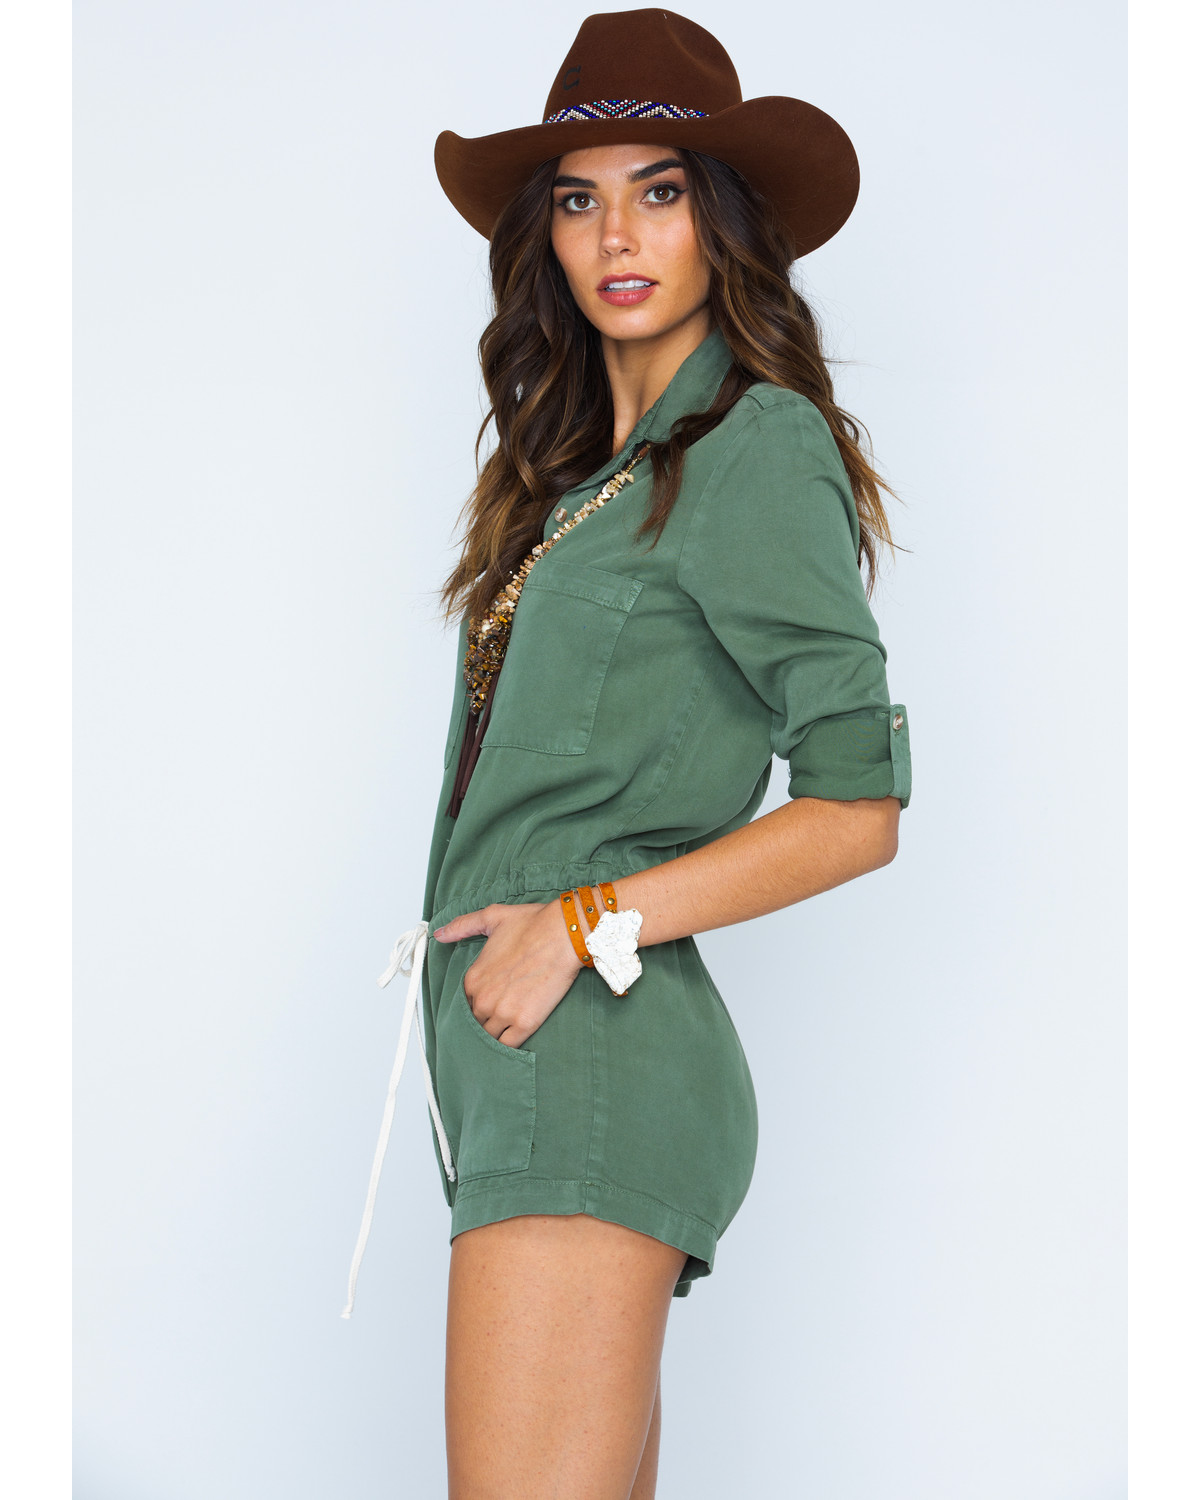 fcbc3b5fee6e Glam Women s Utility Cargo Drawstring Romper - Country Outfitter